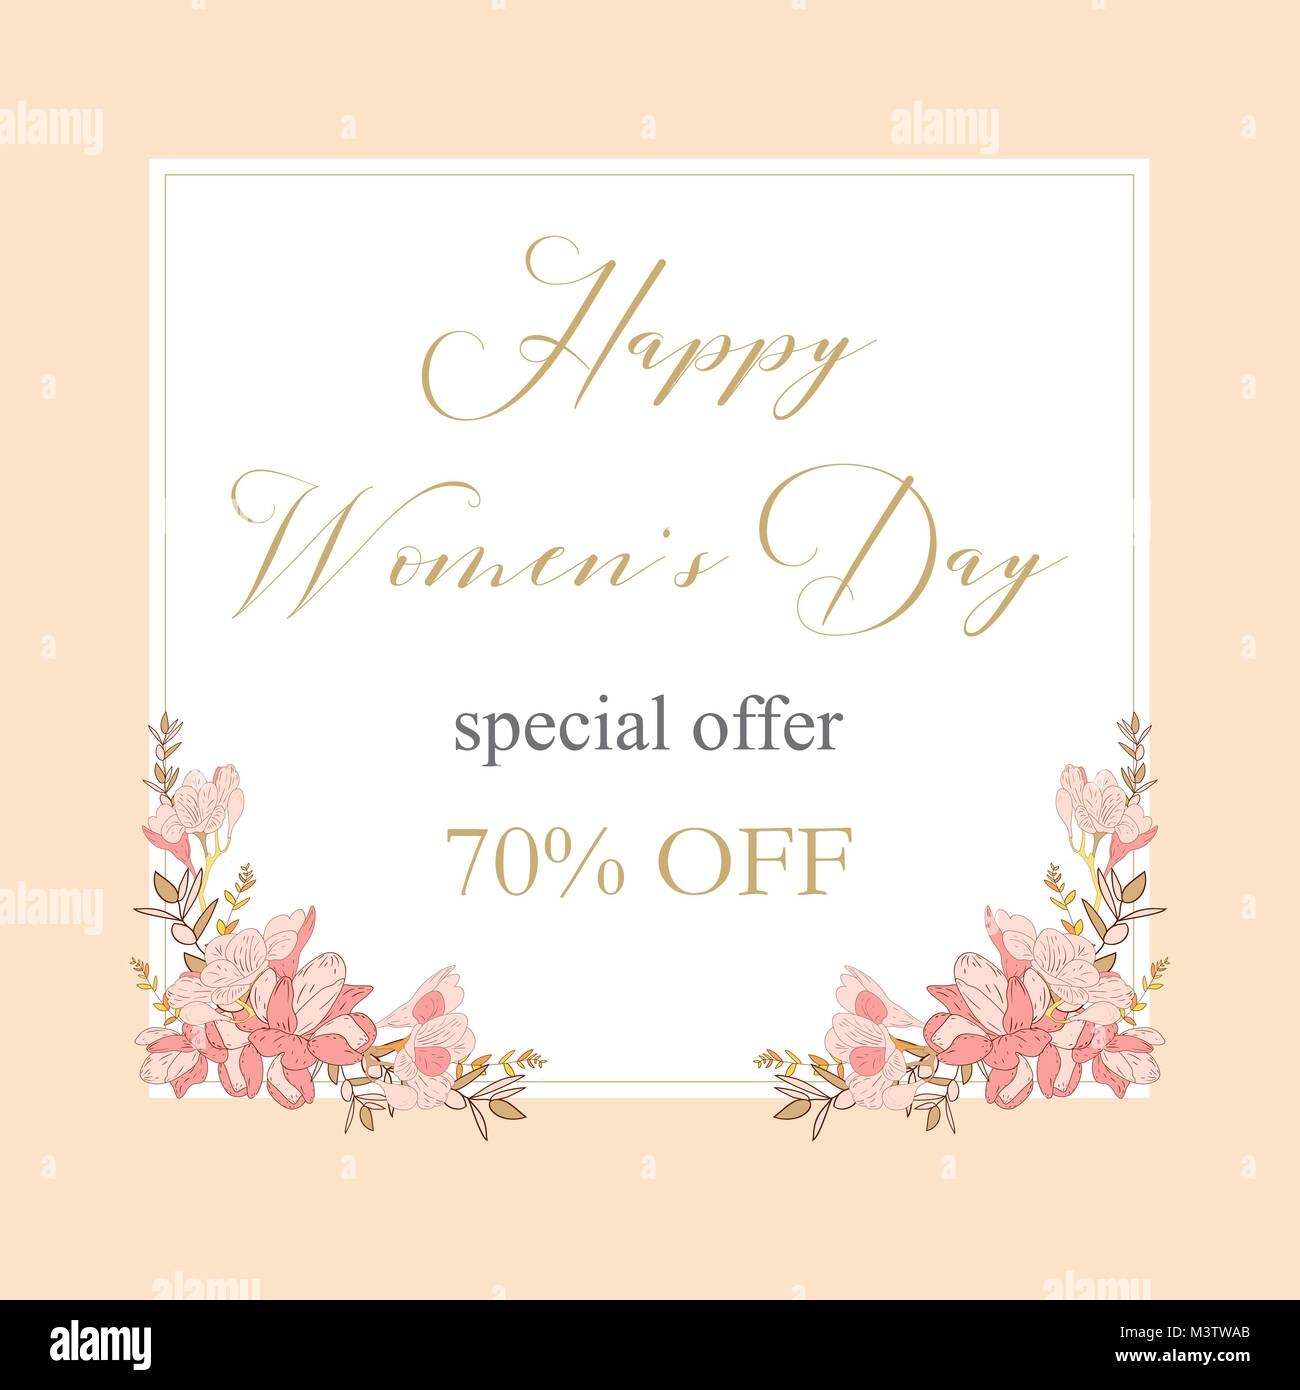 sale discount 8 march happy women s day poster eighth march gift card spring holiday sale futuristic promotion design advertising marketing greeting - Discount Greeting Cards